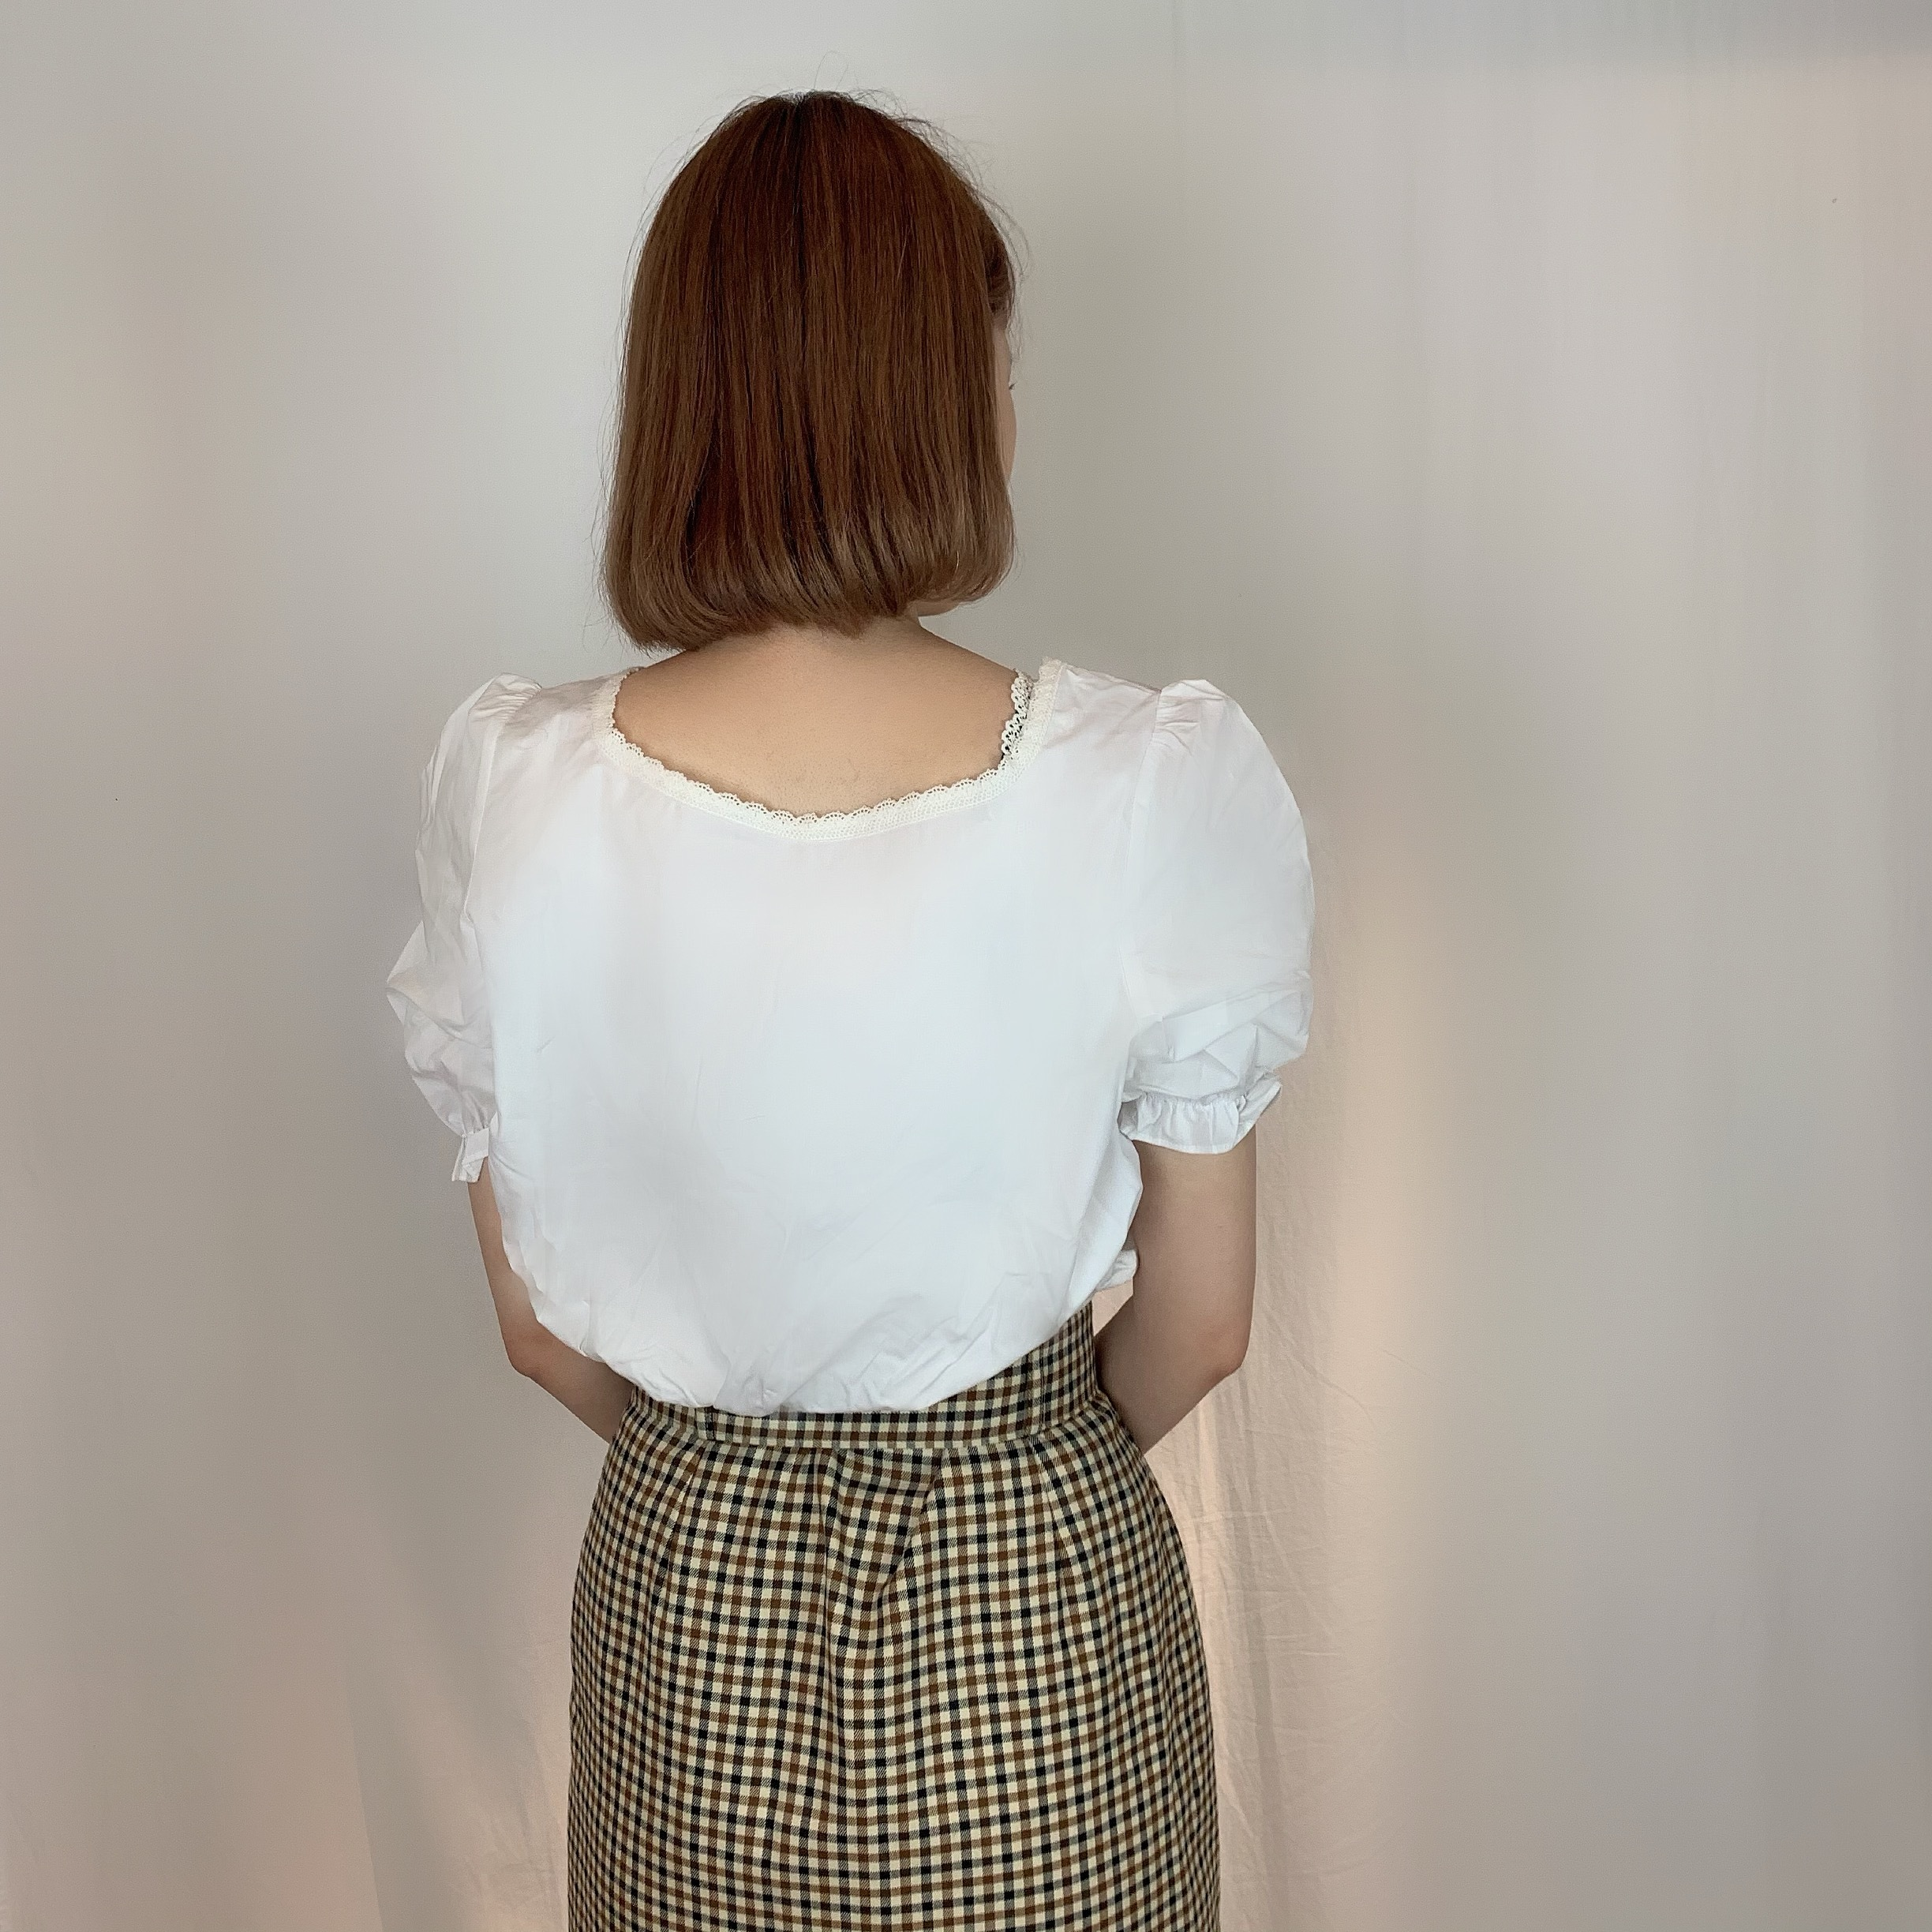 《 NEW 》square neck blouse